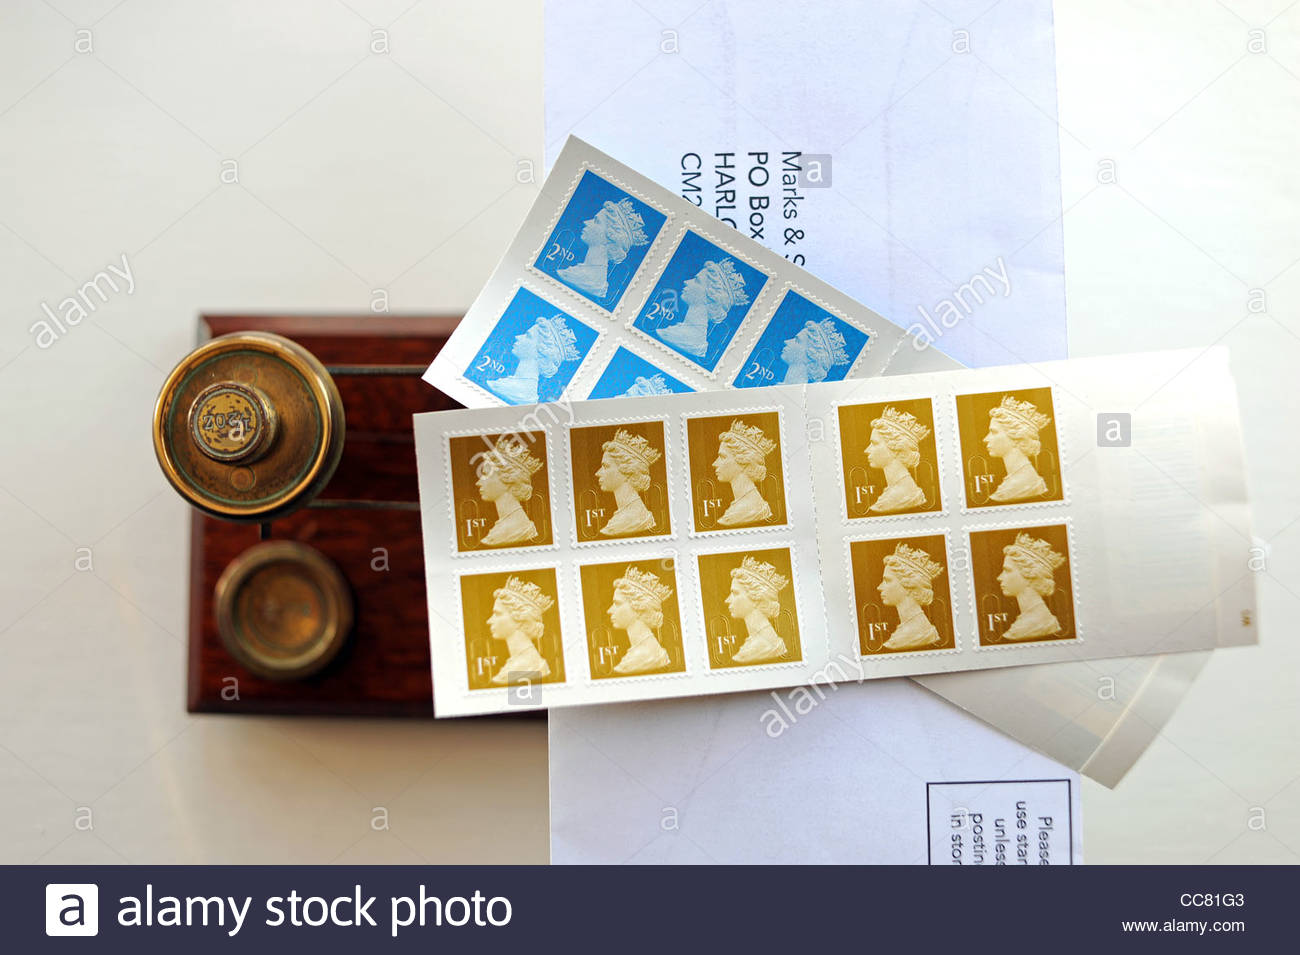 British First 1st class postage stamps UK on a letter sitting on old fashioned post office scales UK